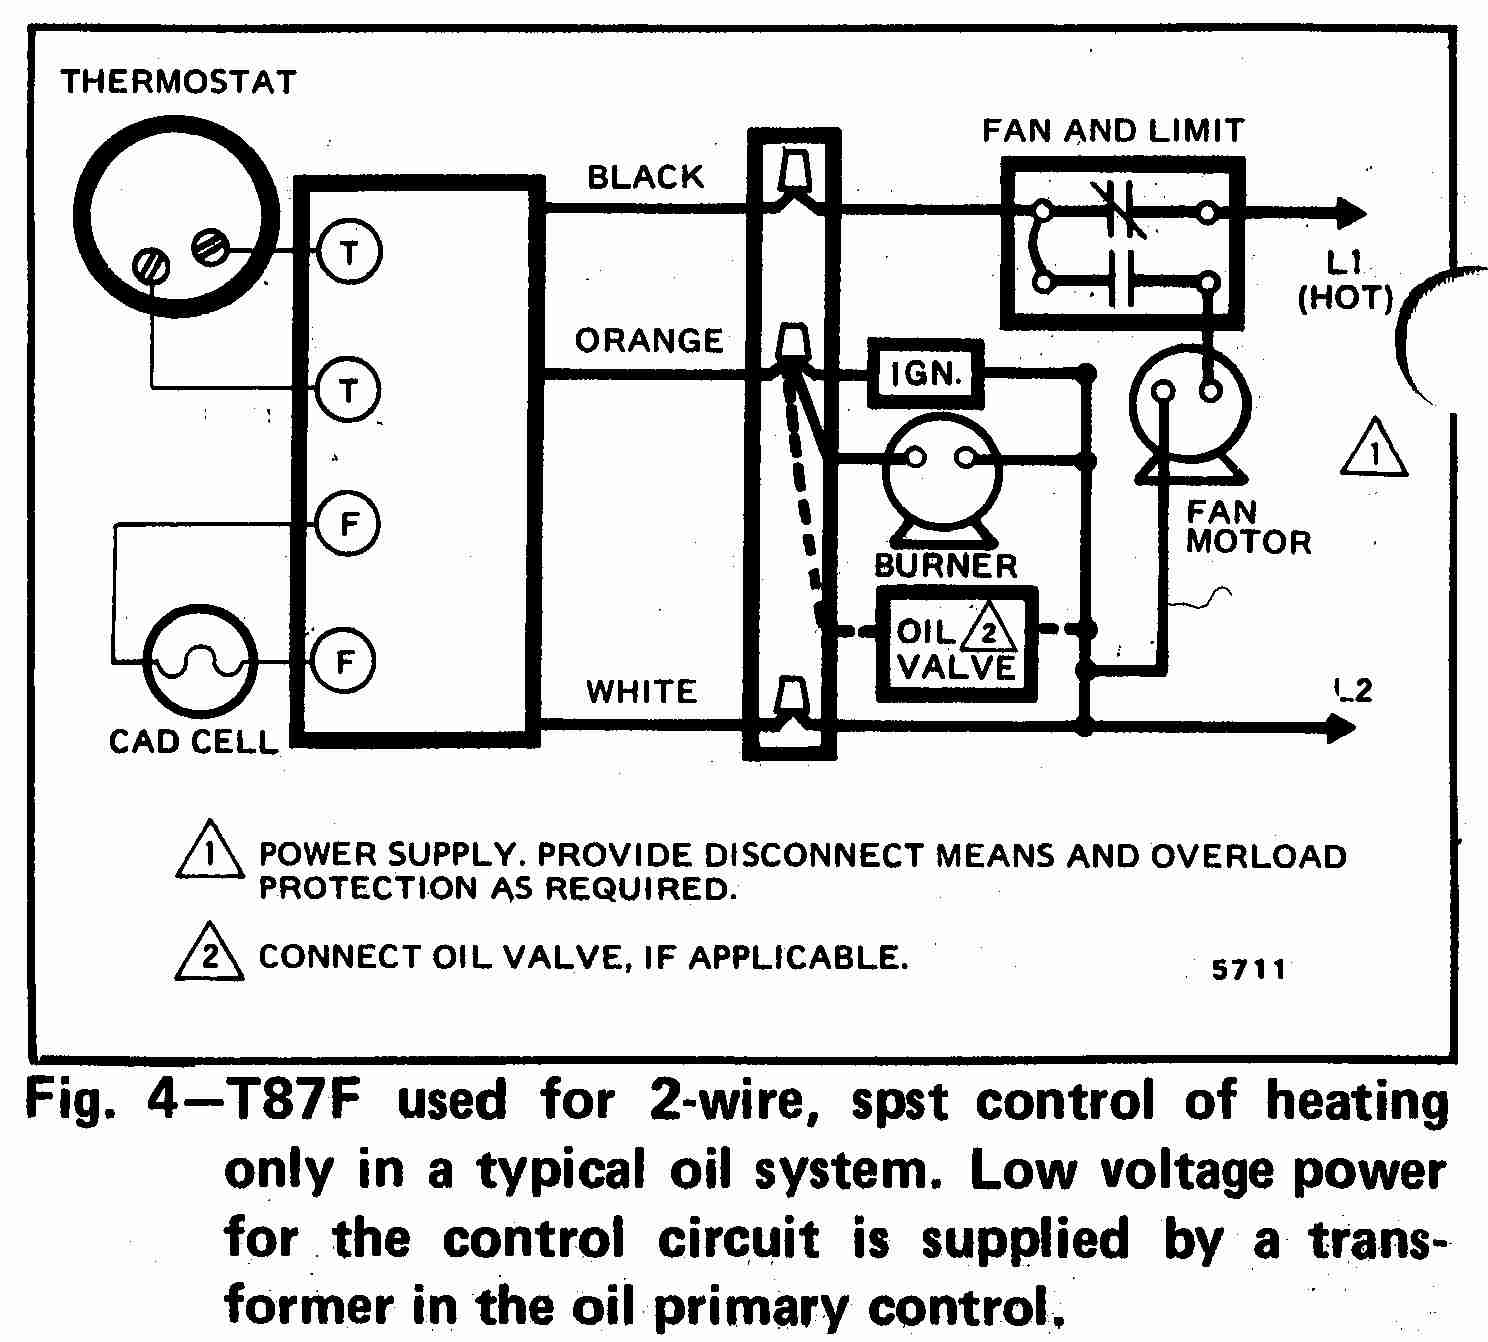 Coleman Electric Furnace Thermostat Wiring Schematic on coleman manufactured home furnace wiring, coleman evcon schematic, coleman furnace manual, coleman electric furnace parts, coleman gas furnace diagram, coleman electric furnace capacitor, heat sequencer schematic, coleman evcon furnace troubleshooting, coleman evcon eb15b, coleman furnace parts diagrams,